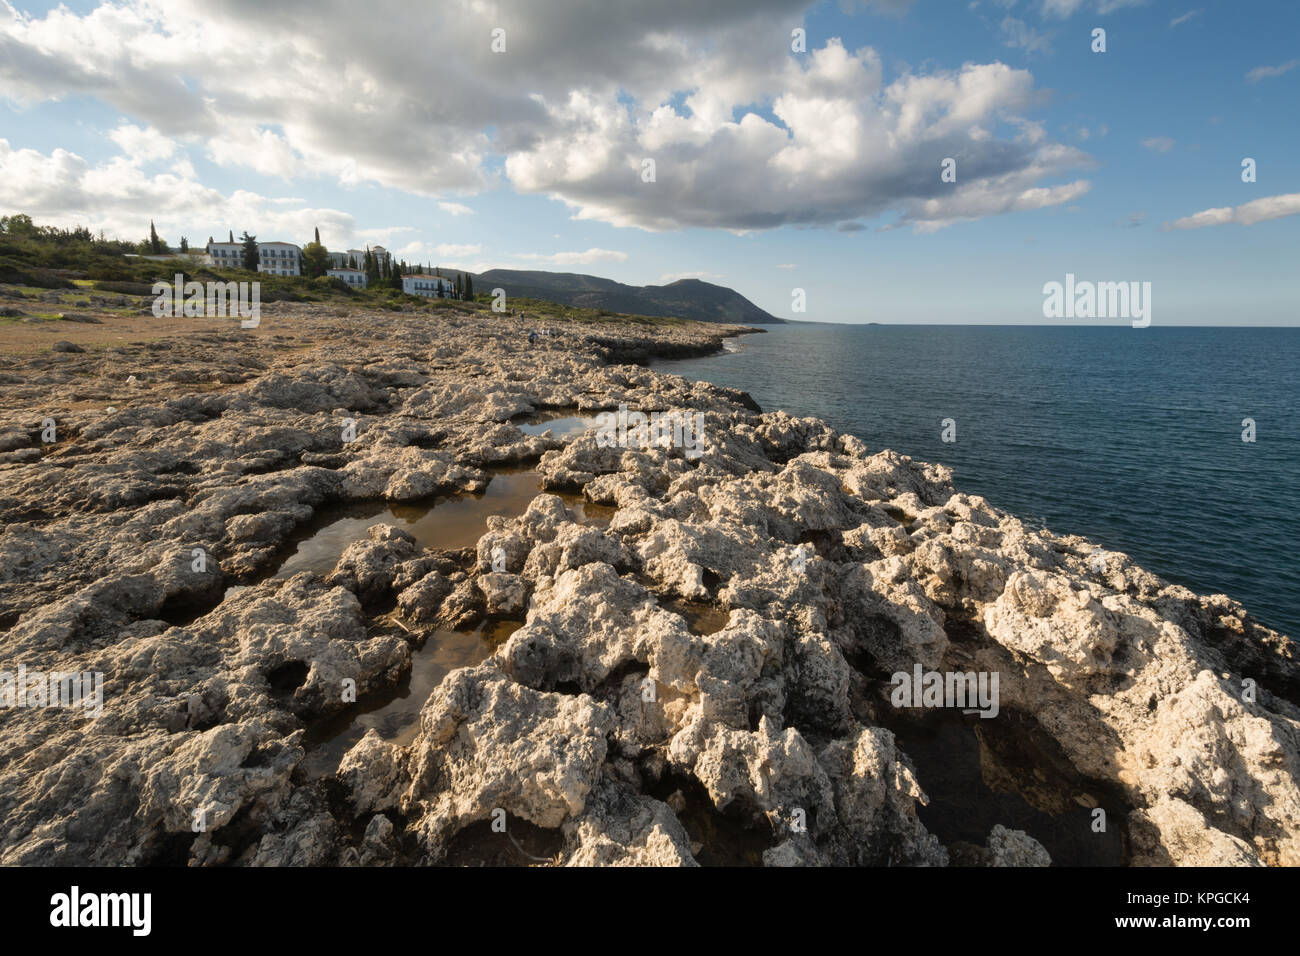 limestone-scenery-with-rock-pools-next-to-the-sea-near-latchi-in-cyprus-KPGCK4.jpg